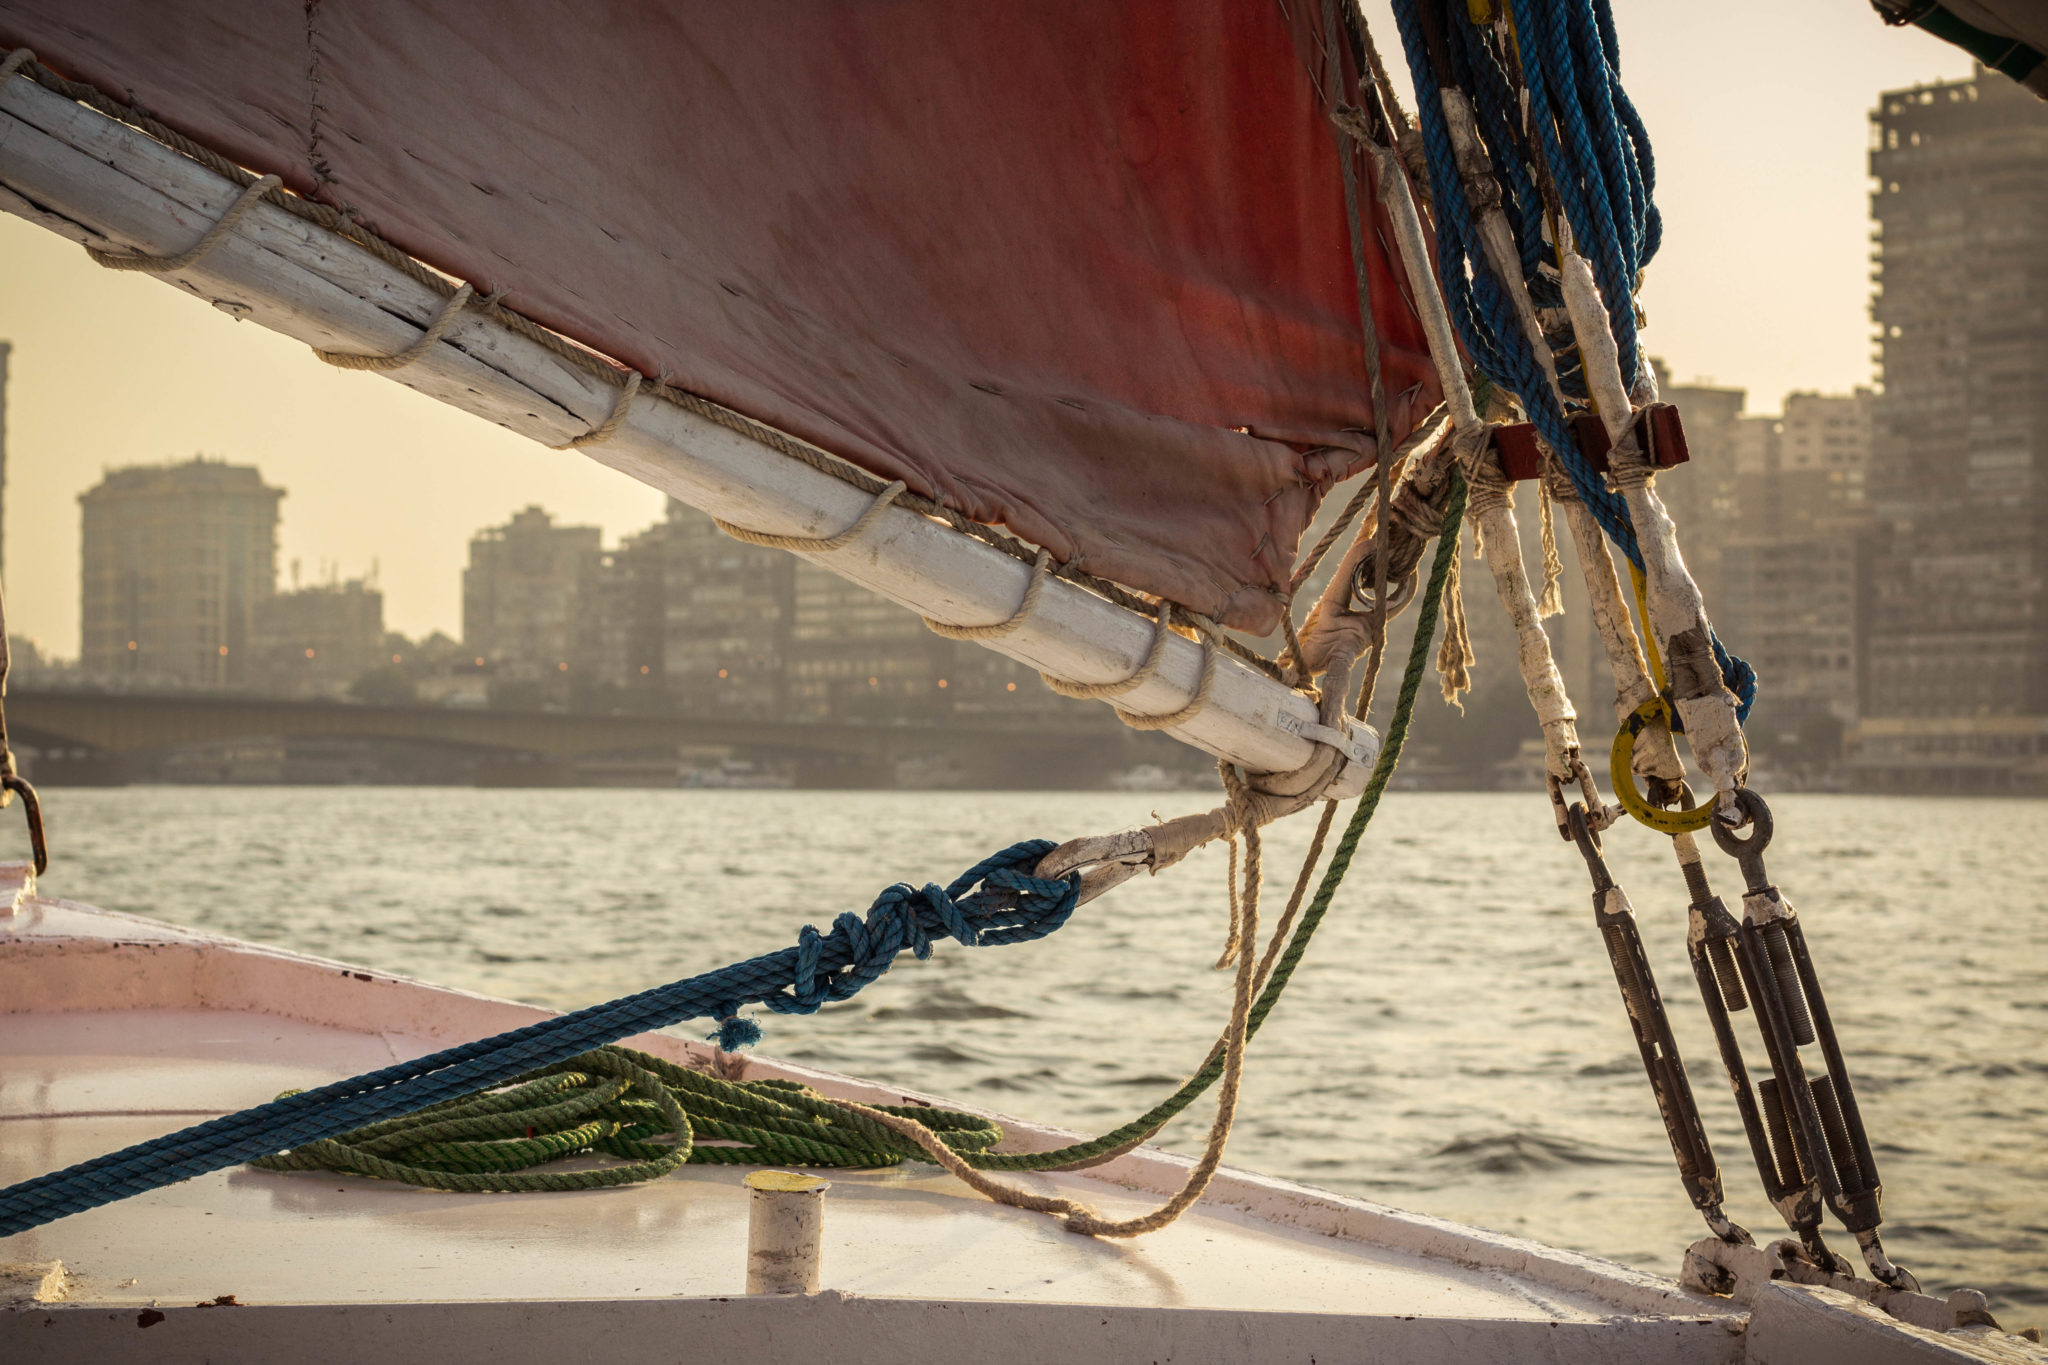 Sunset cruise on a felucca sail boat on the Nile in Cairo, Egypt